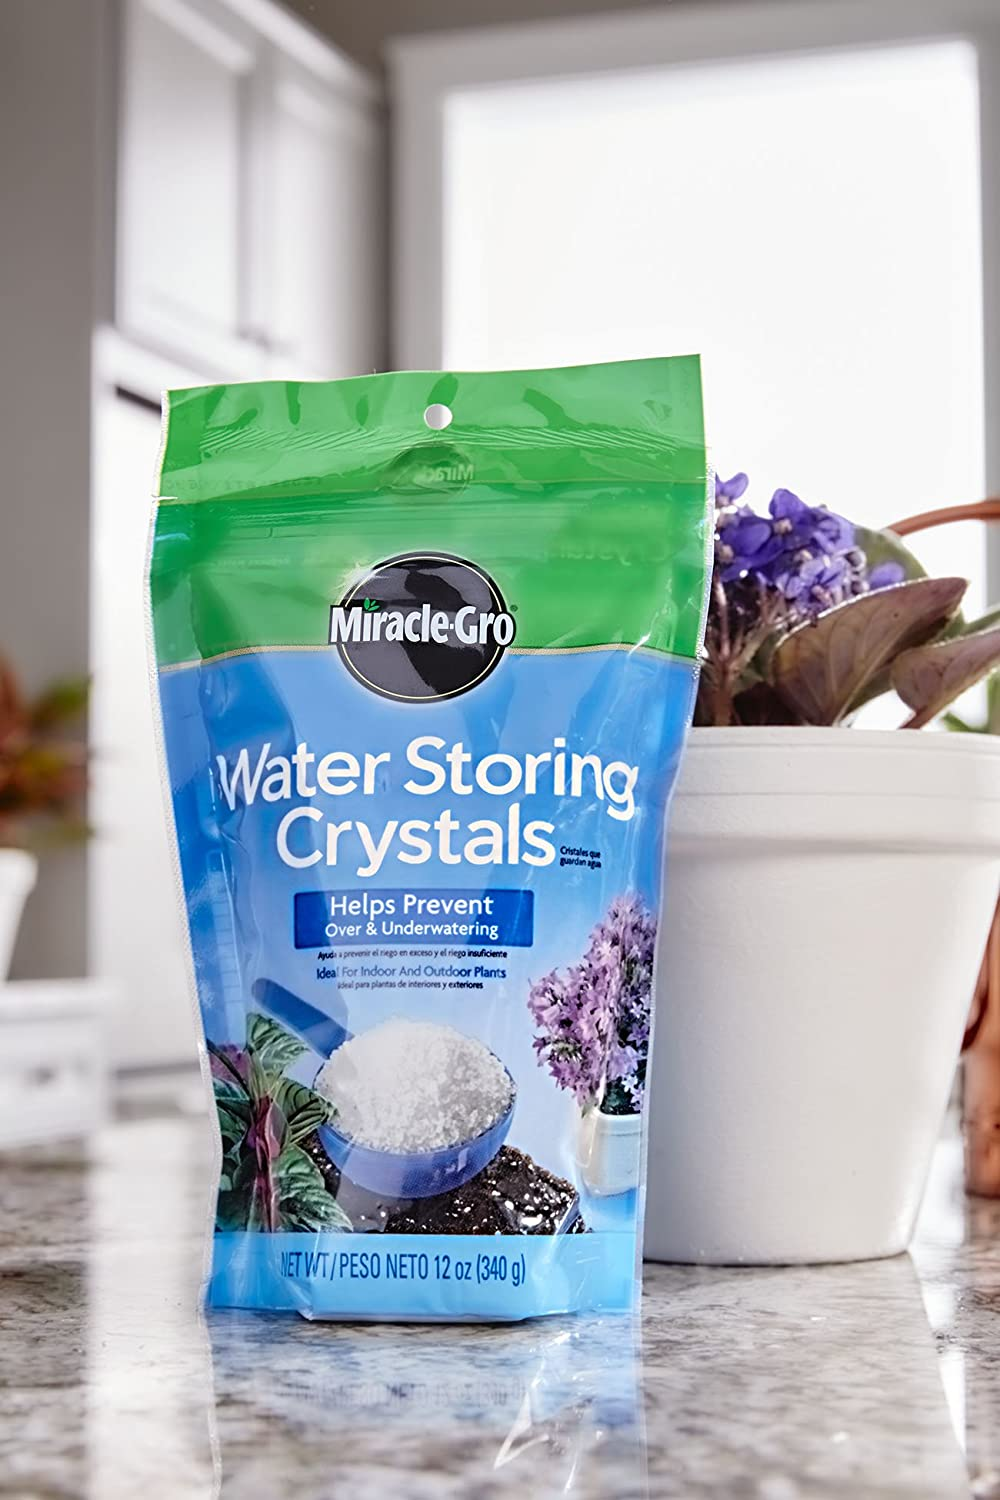 Miracle-Gro Water Storing Crystals, 12-Ounce : Soil Moisture Retention : Garden & Outdoor